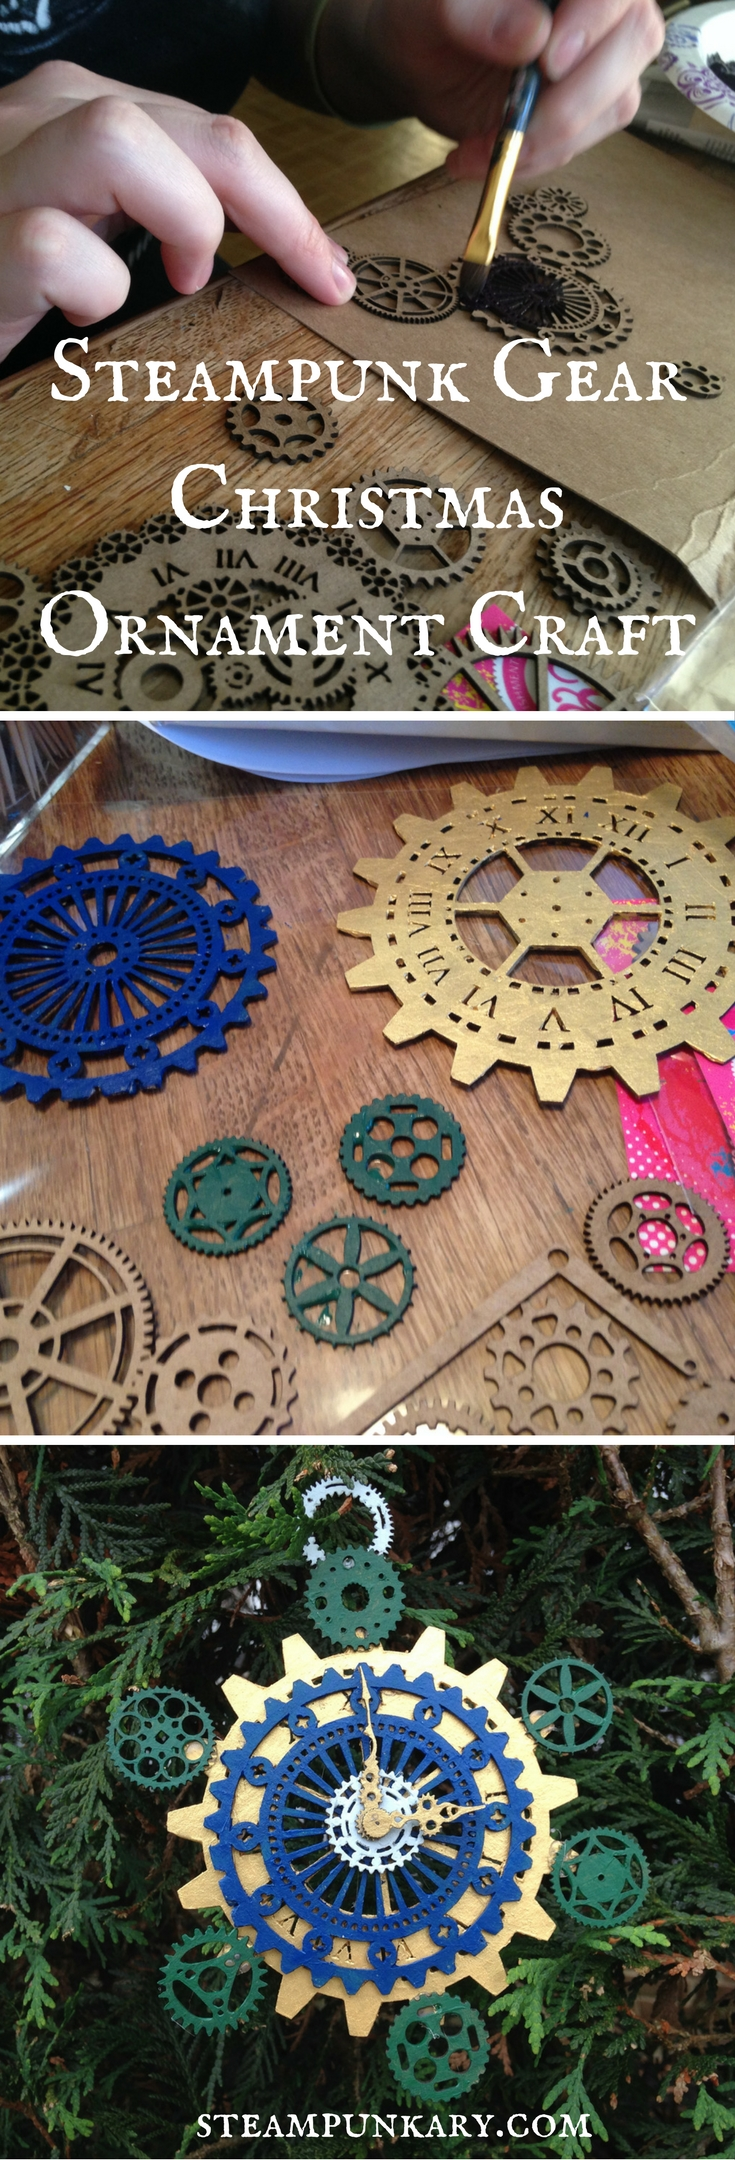 Steampunk Gear Christmas Ornament Craft